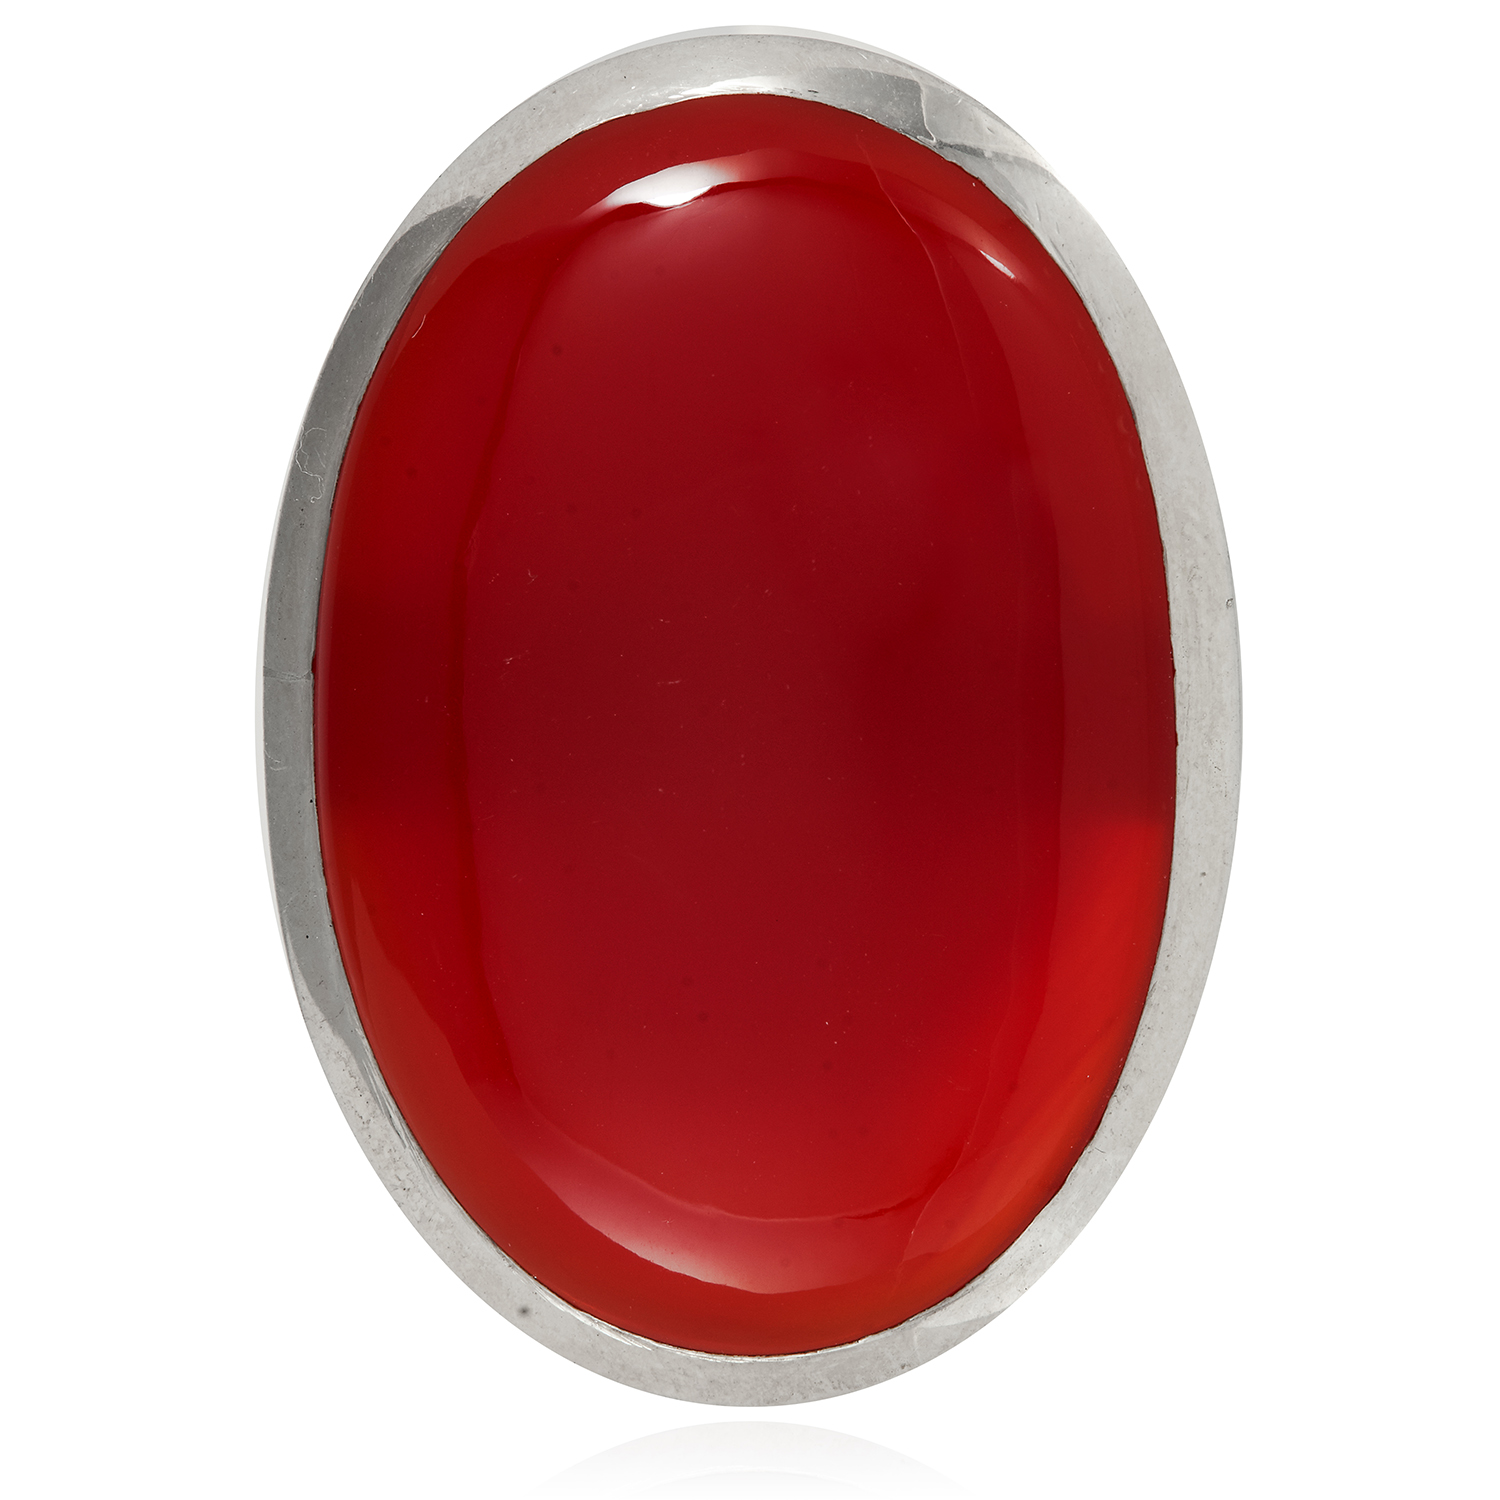 A CARNELIAN DRESS RING in sterling silver, set with a large cabochon carnelian, size P / 7.5, 26.